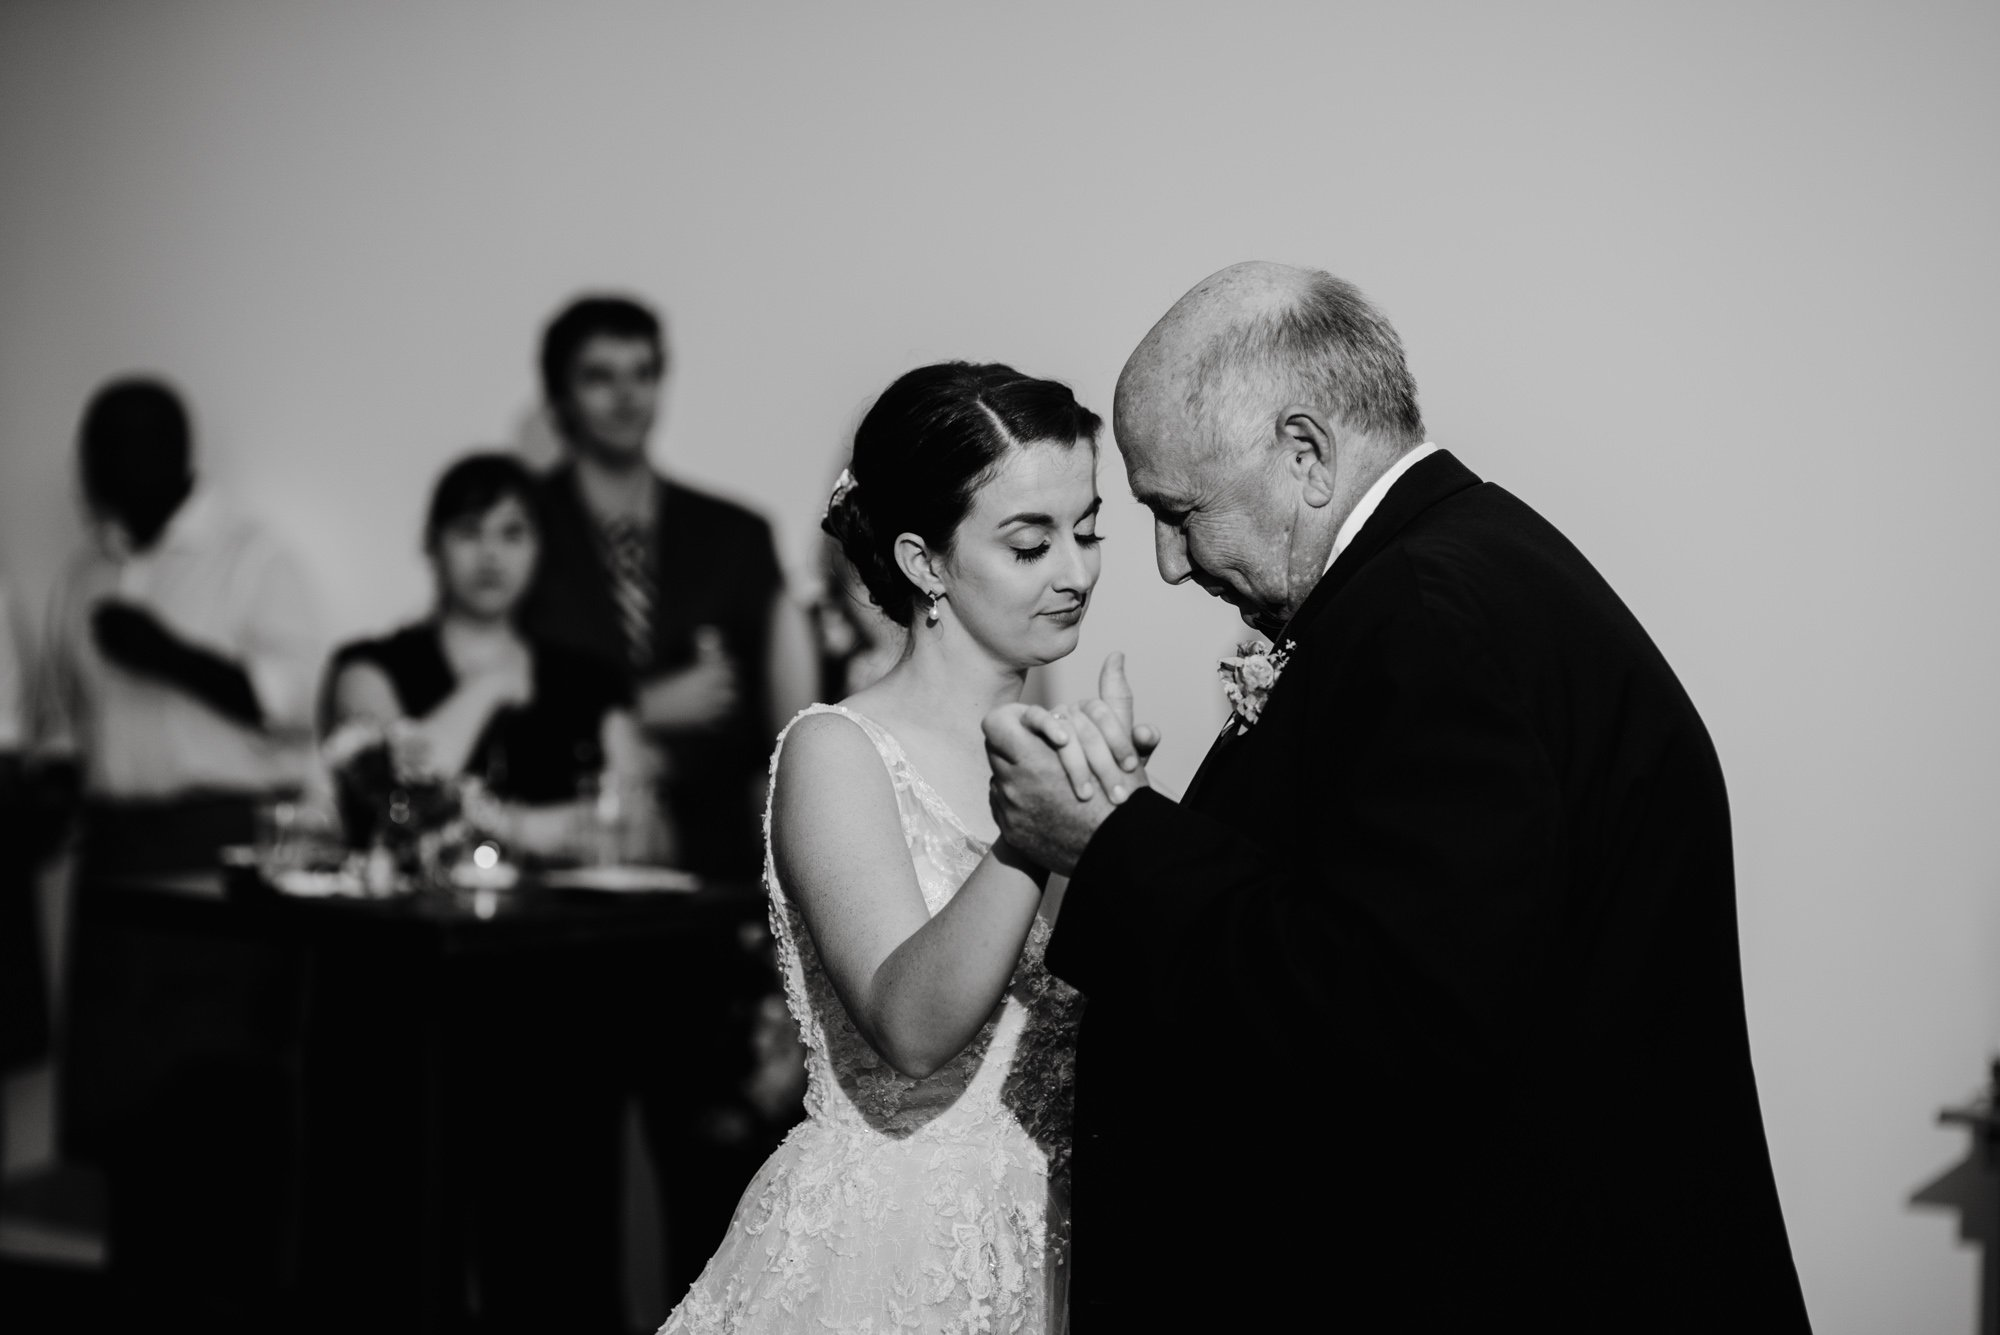 father daughter dance photographs, black and white photos of father and daughter dancing at a wedding, modern wedding photography in austin texas